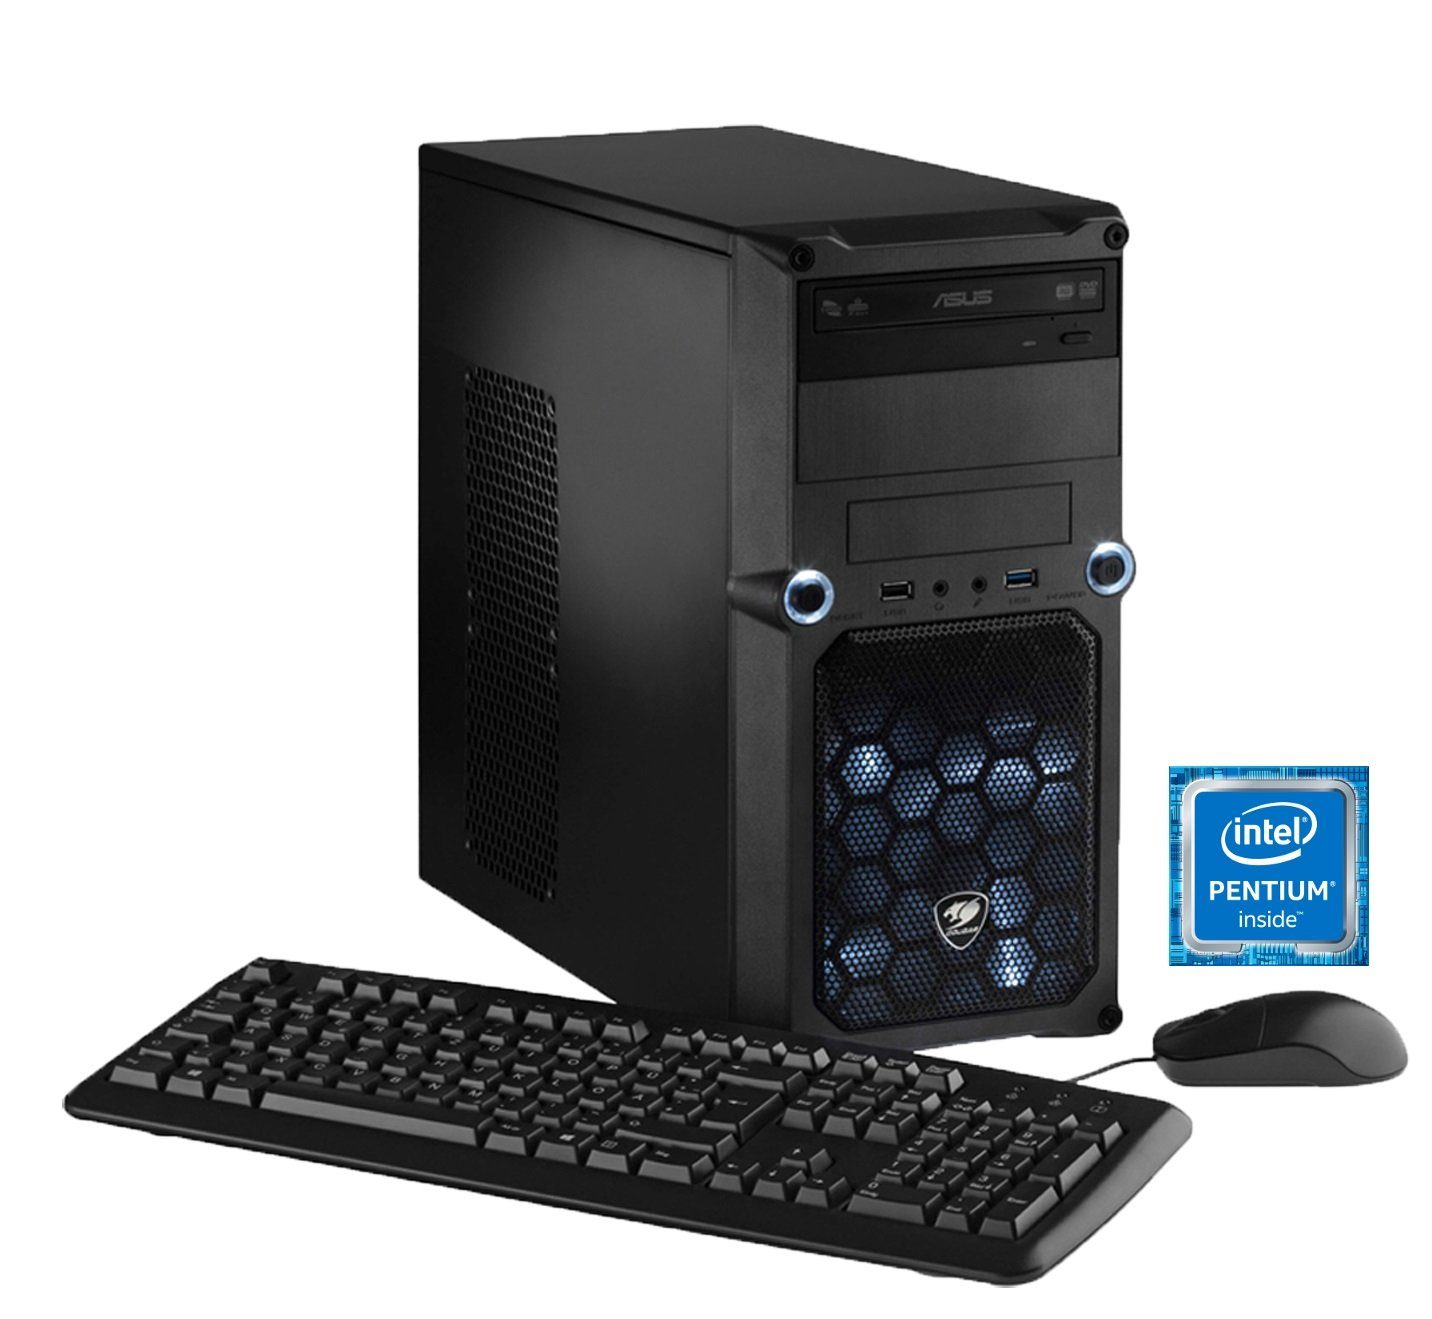 Hyrican Gaming PC Intel® Pentium® G4400, 8GB, 1TB, GT 730, Windows 10 »CyberGamer 5247«